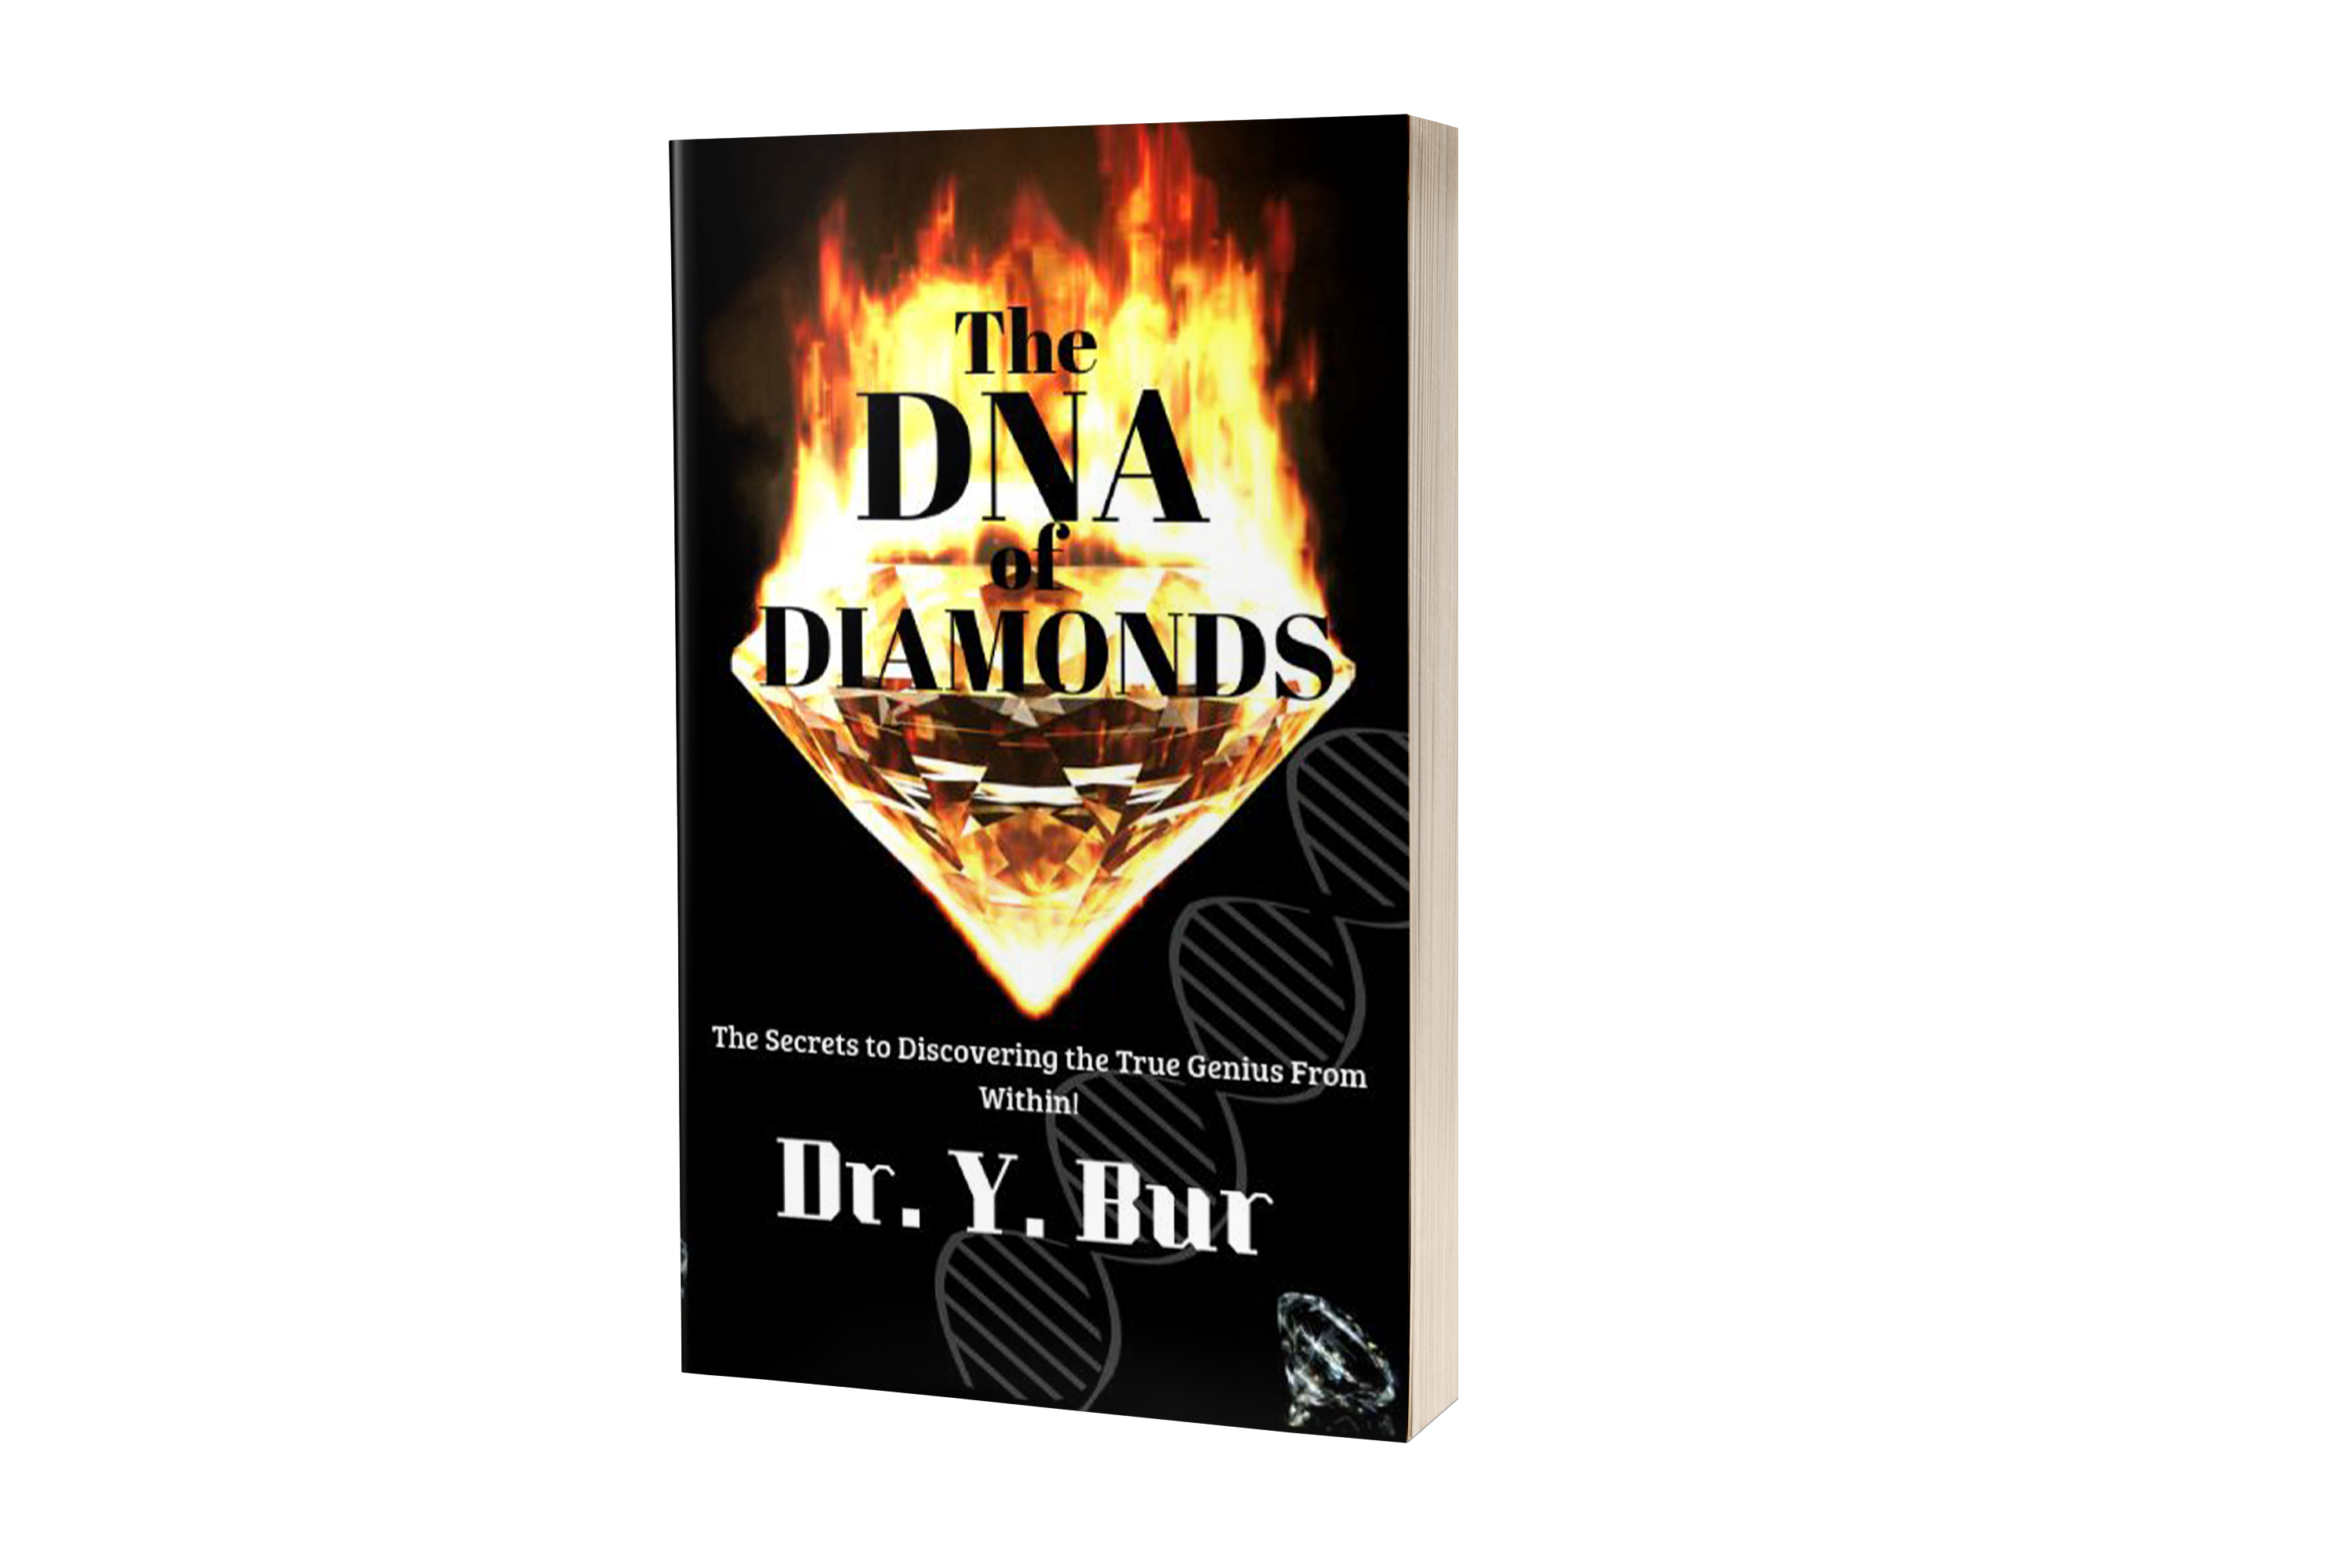 The DNA of Diamonds